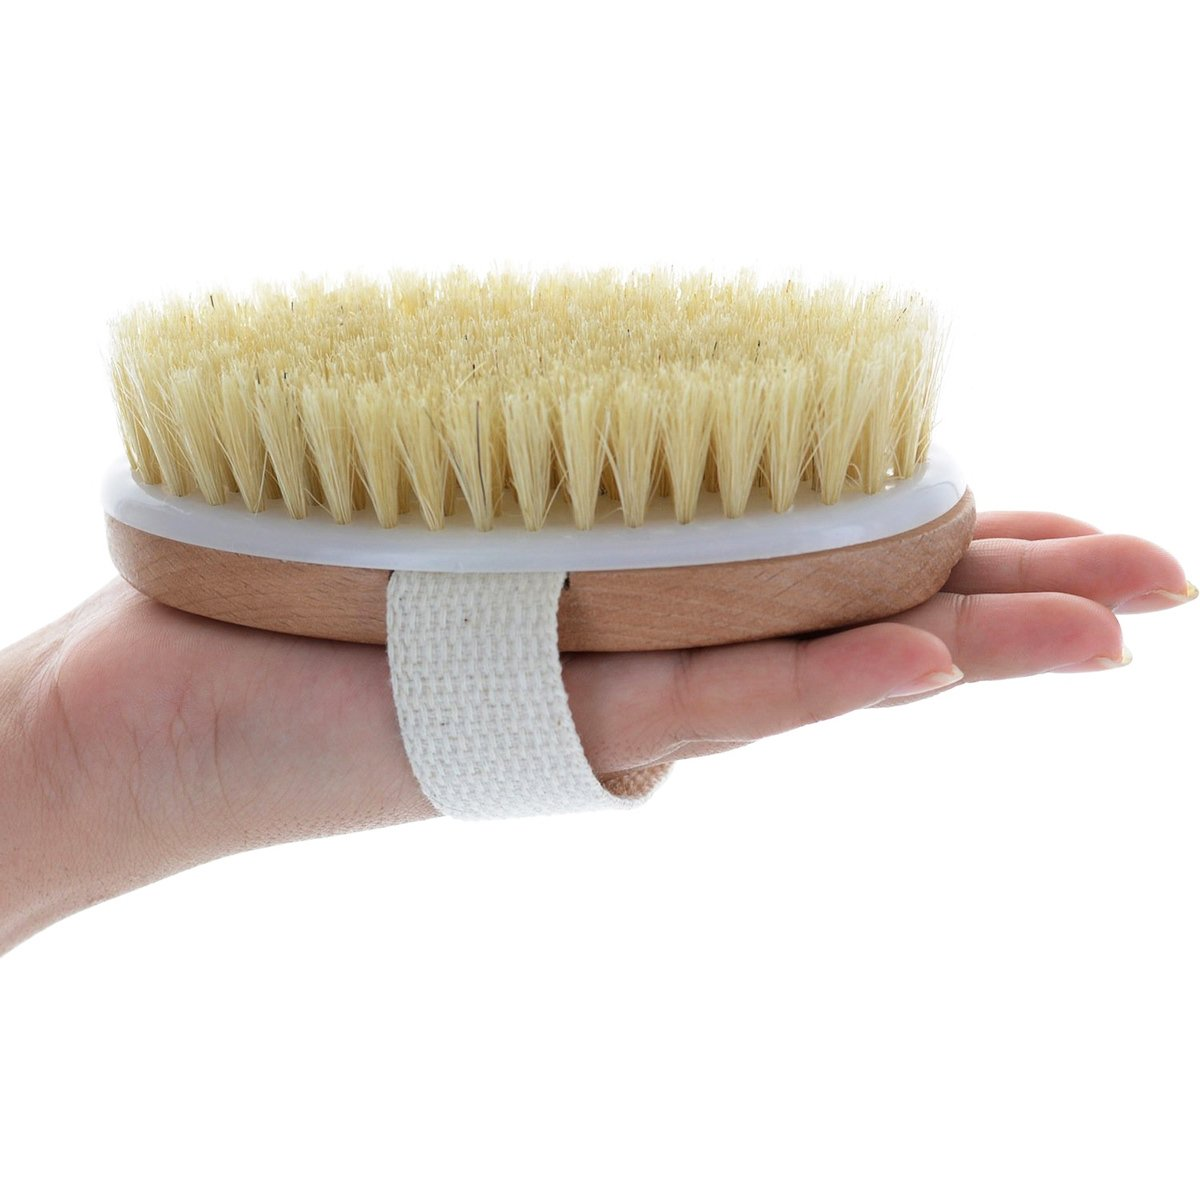 LEORX Wooden Dry Max 51% OFF Skin Body Brush Natural Bristles Weekly update with